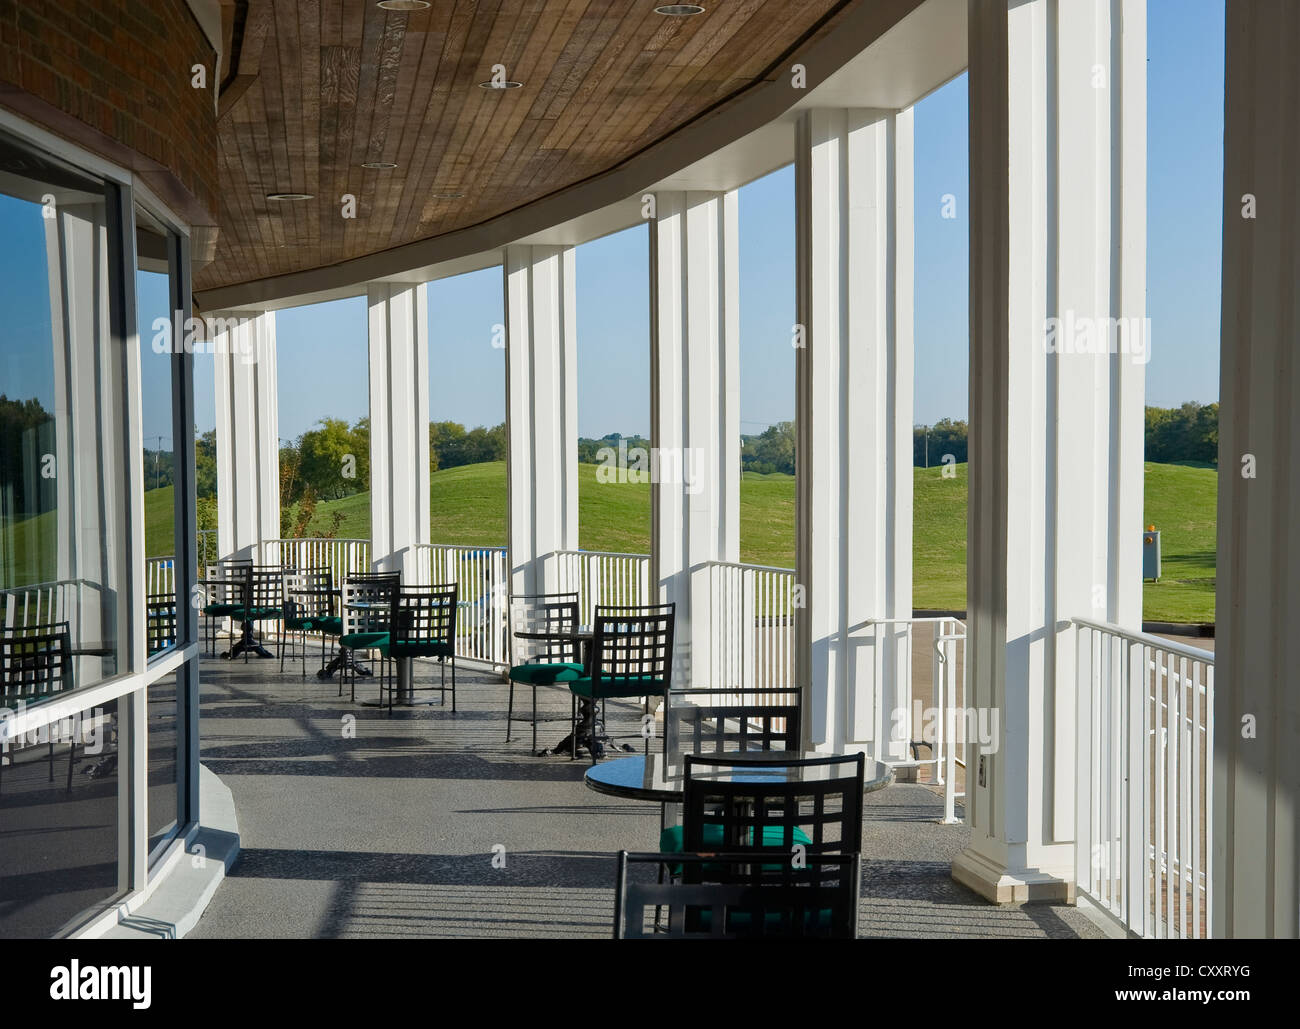 Patio With Columns, Golf Country Club, Tennessee USA - Stock Image